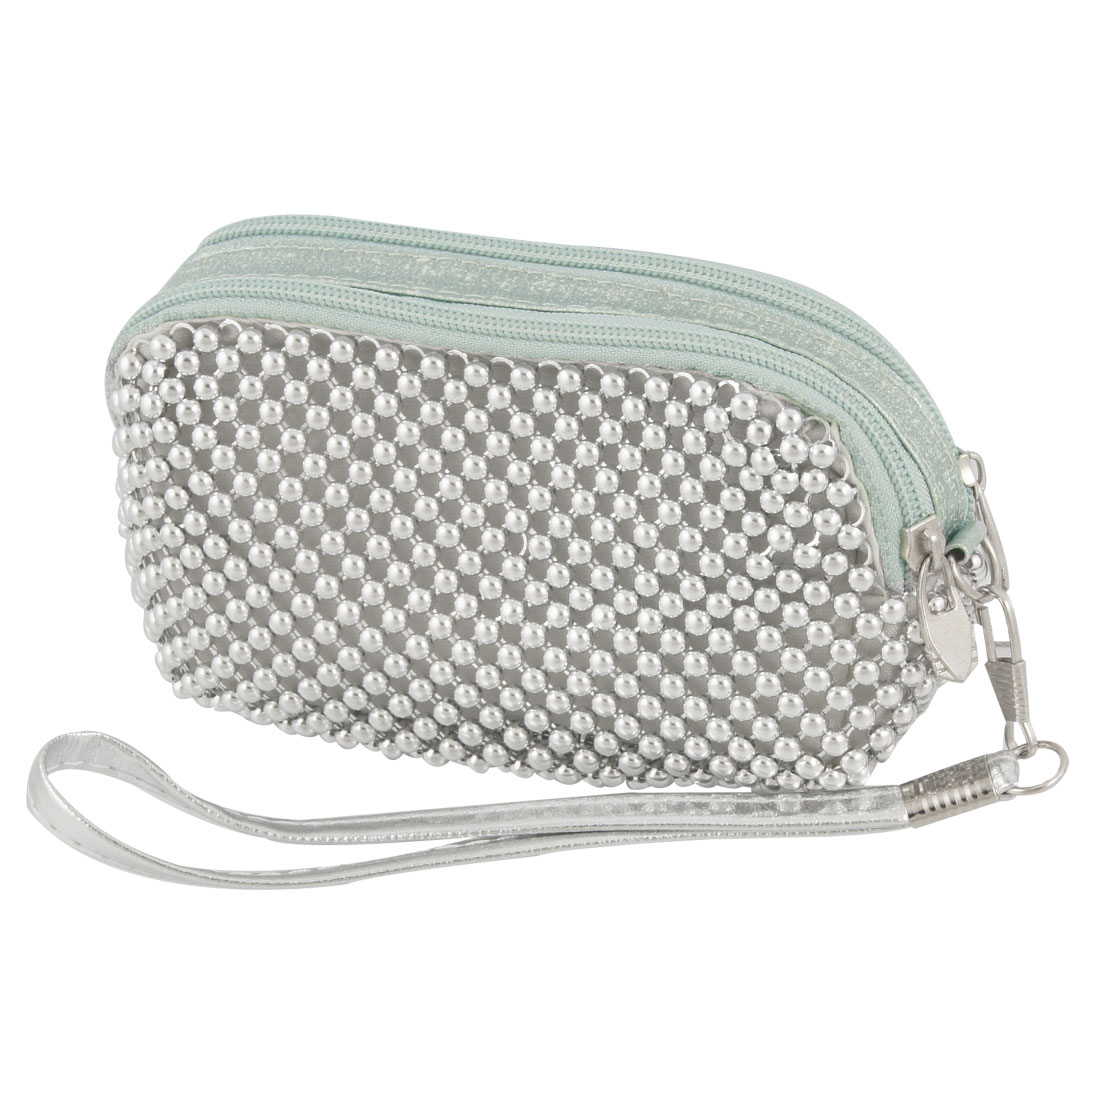 Lady Silver Tone Metal Beads Zip up Wristlet Purse w Removable Strap